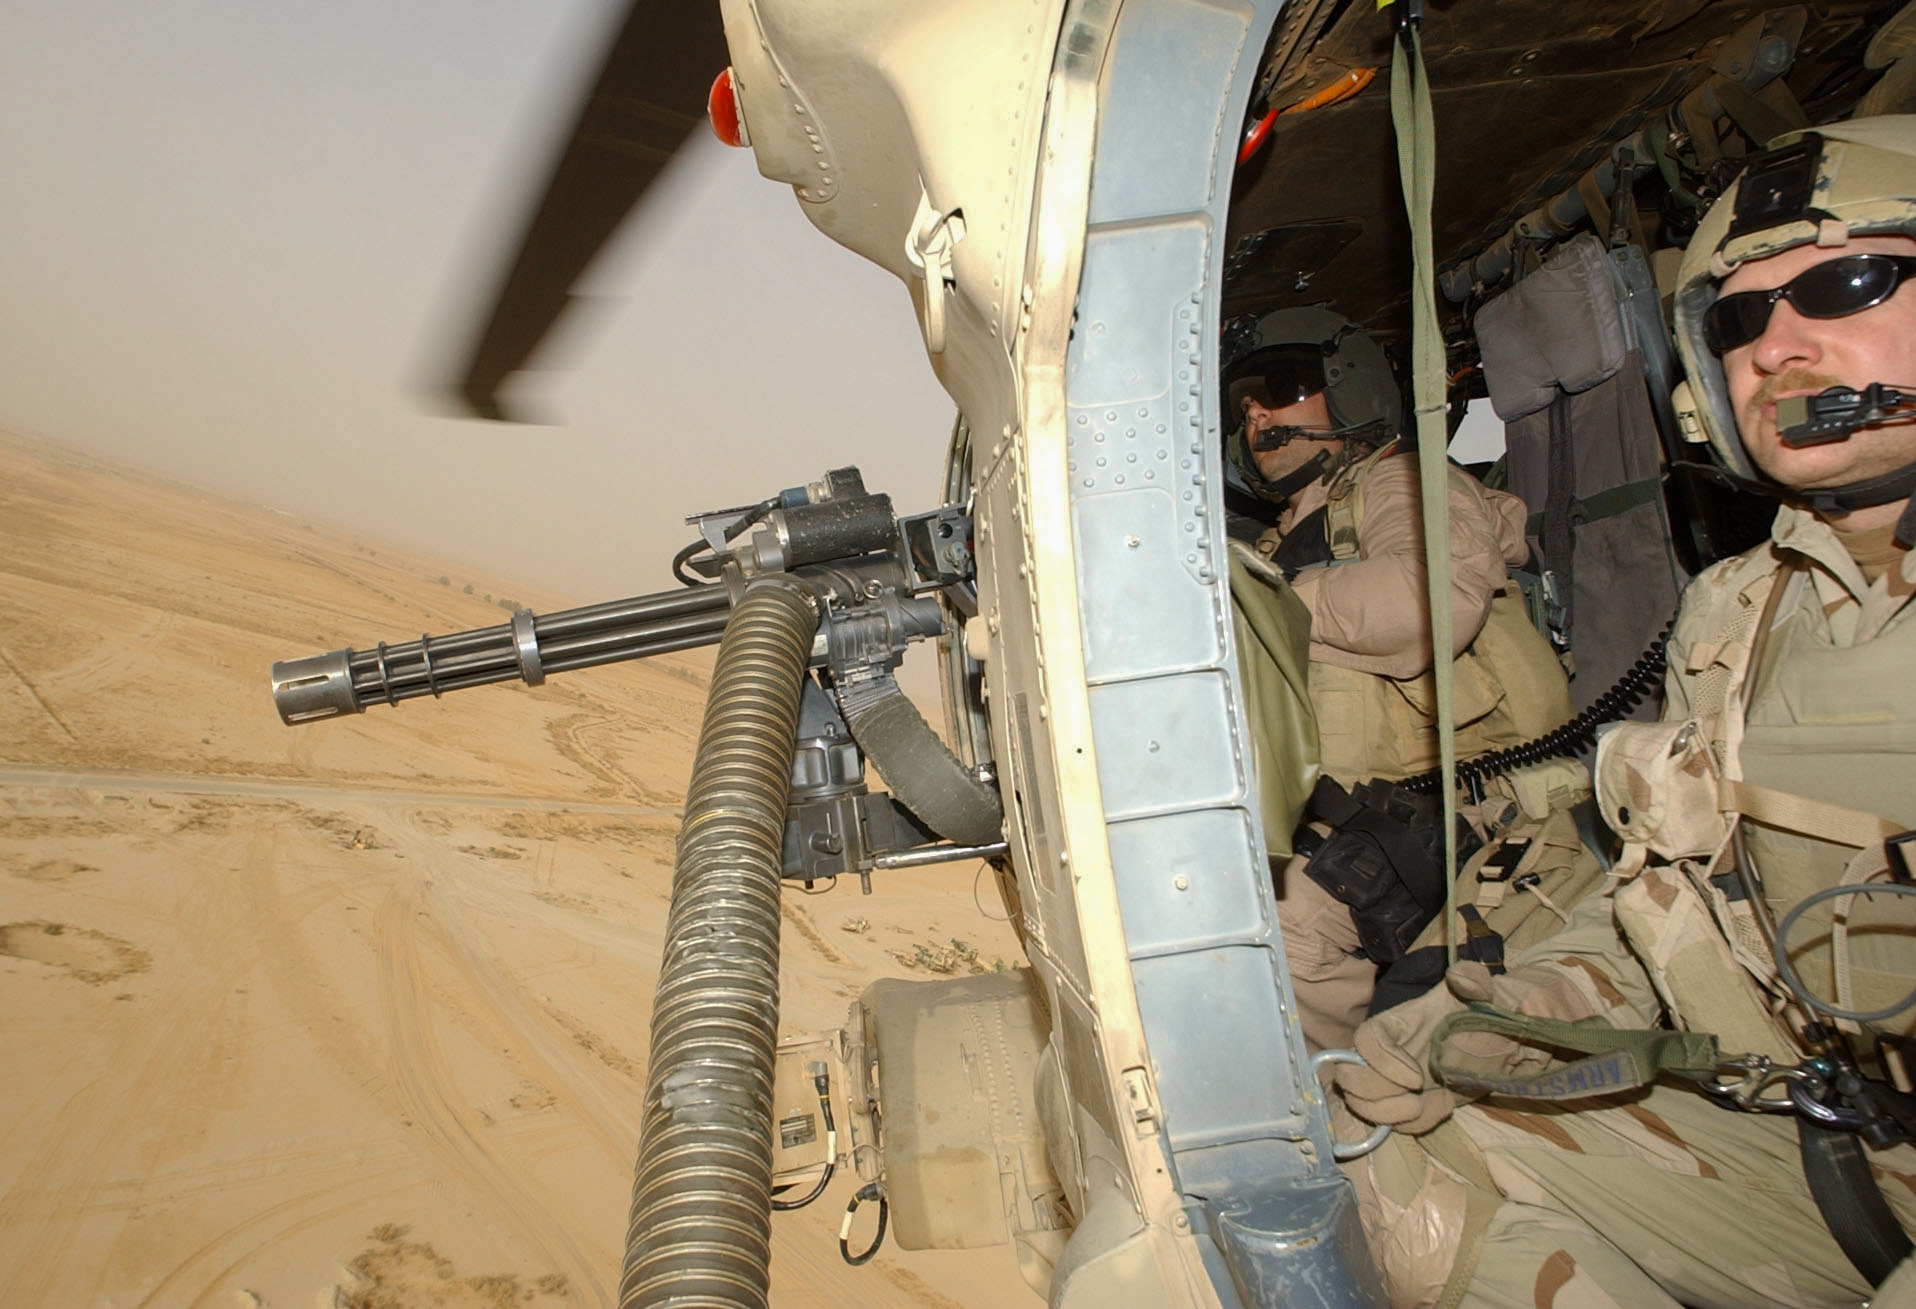 Staff Sgt.. Anthony Pieske, left, door gunner on HH-60 Pavehawk, mans gun next to pararescueman Master Sgt. David Armstrong, right, while flying a search and rescue flight over southern Iraq on Monday. (Alan Lessig/Air Force Times)